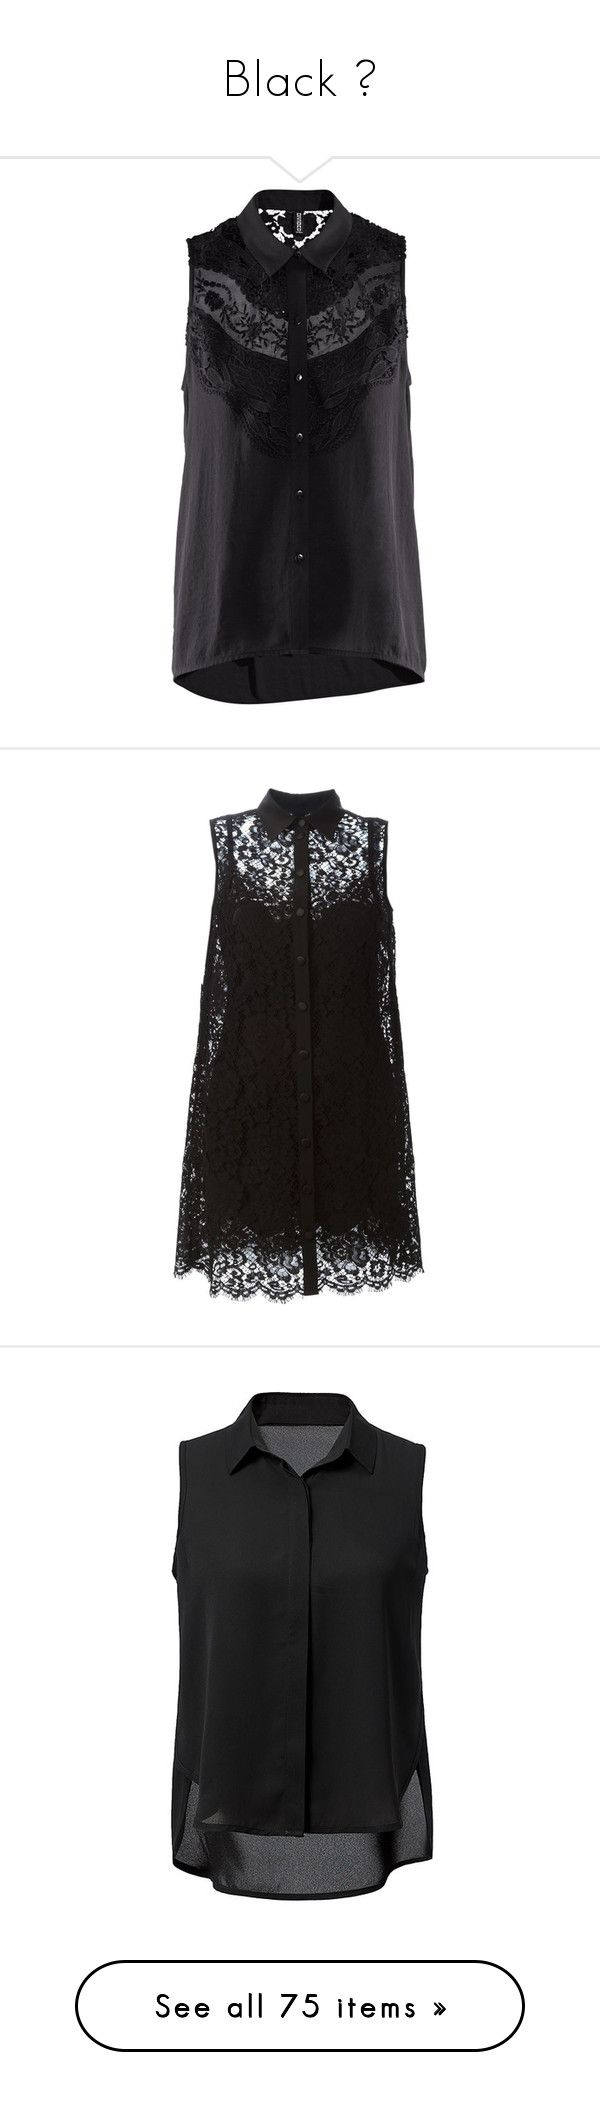 """""""Black ♥"""" by ellaa-h ❤ liked on Polyvore featuring tops, blouses, black, h&m, lace, sheer top, transparent top, transparent blouse, sleeveless tops and see through blouse"""